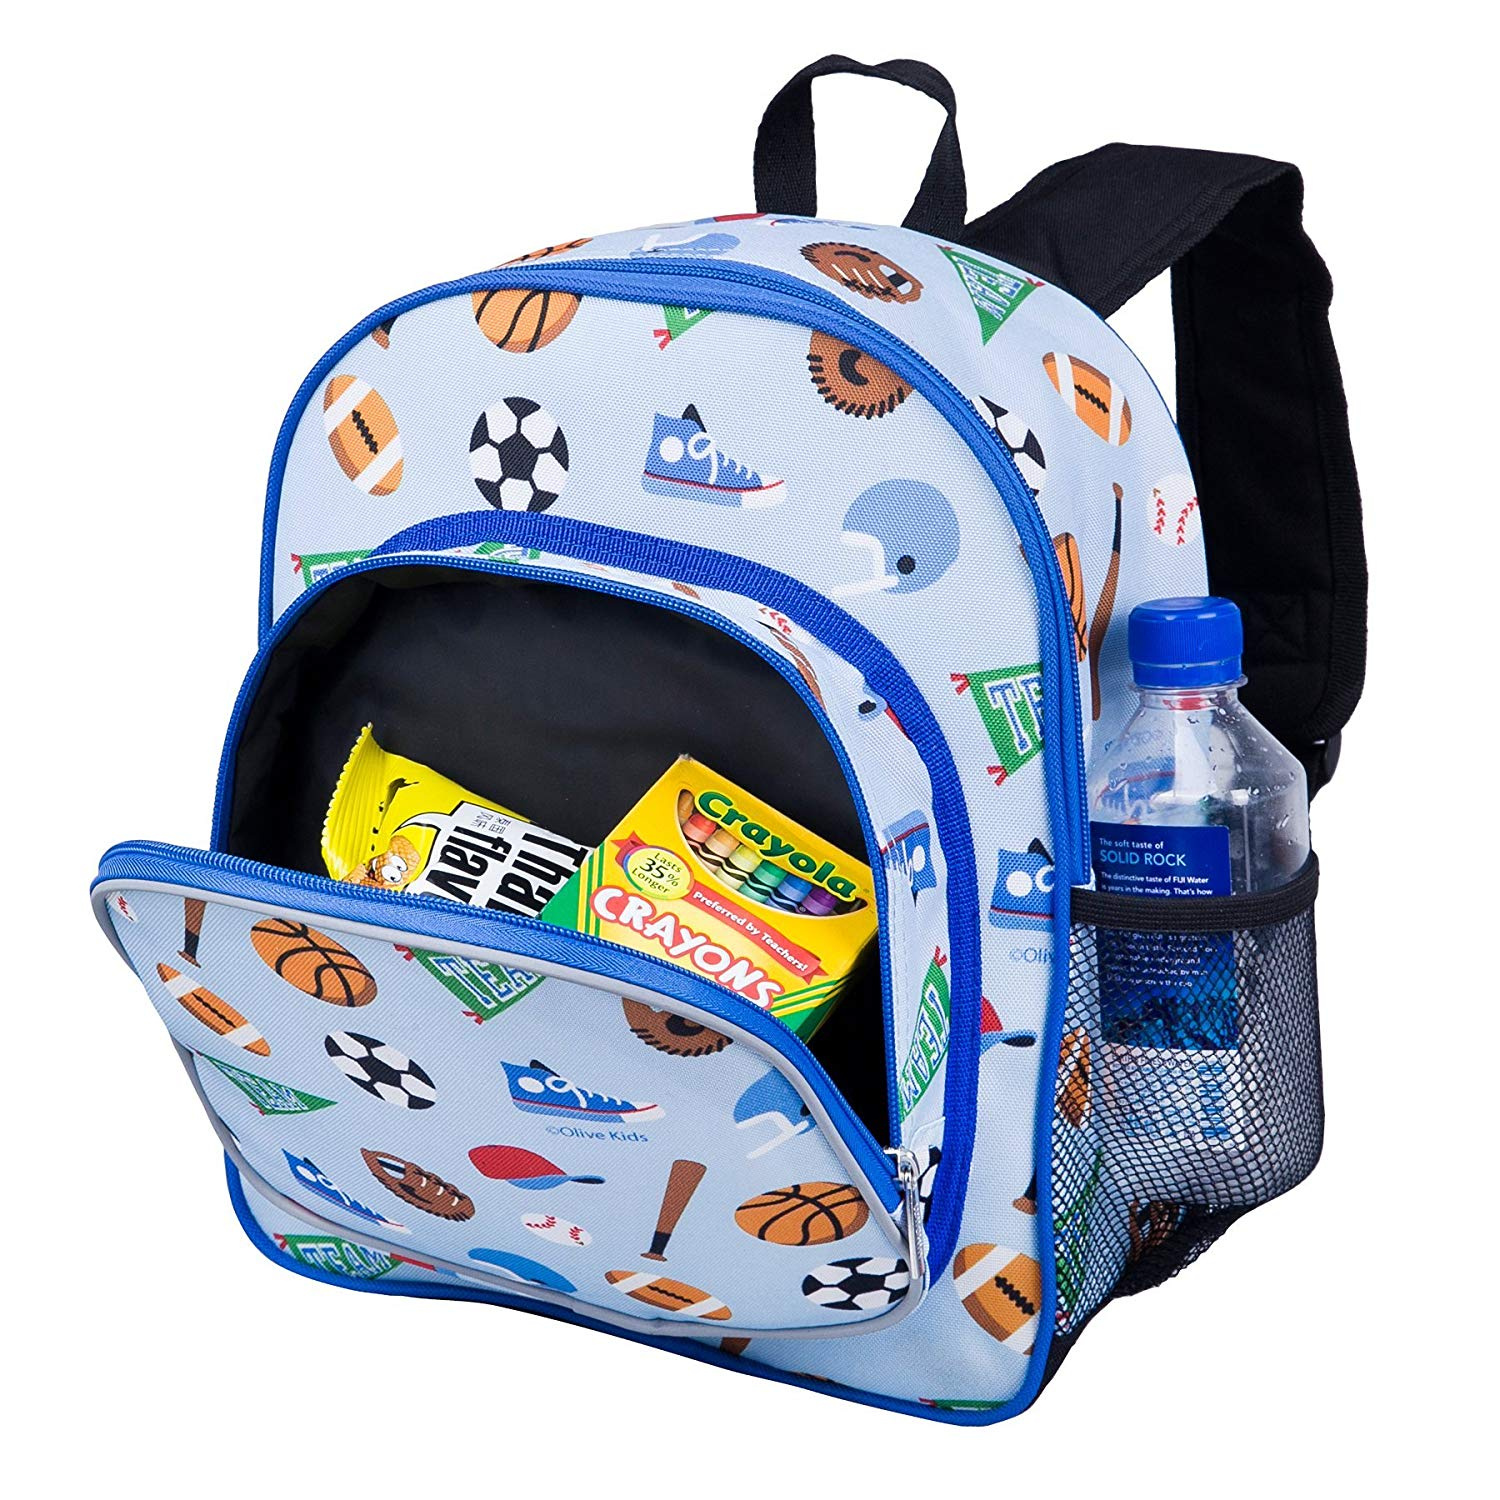 8d6f5d8a88c7 Wildkin 30cm Backpack, Includes Insulated, Food-Safe Front Pocket and Side  Mesh Water Bottle Pocket, Perfect for Preschool, Daycare, and Day Trips, ...